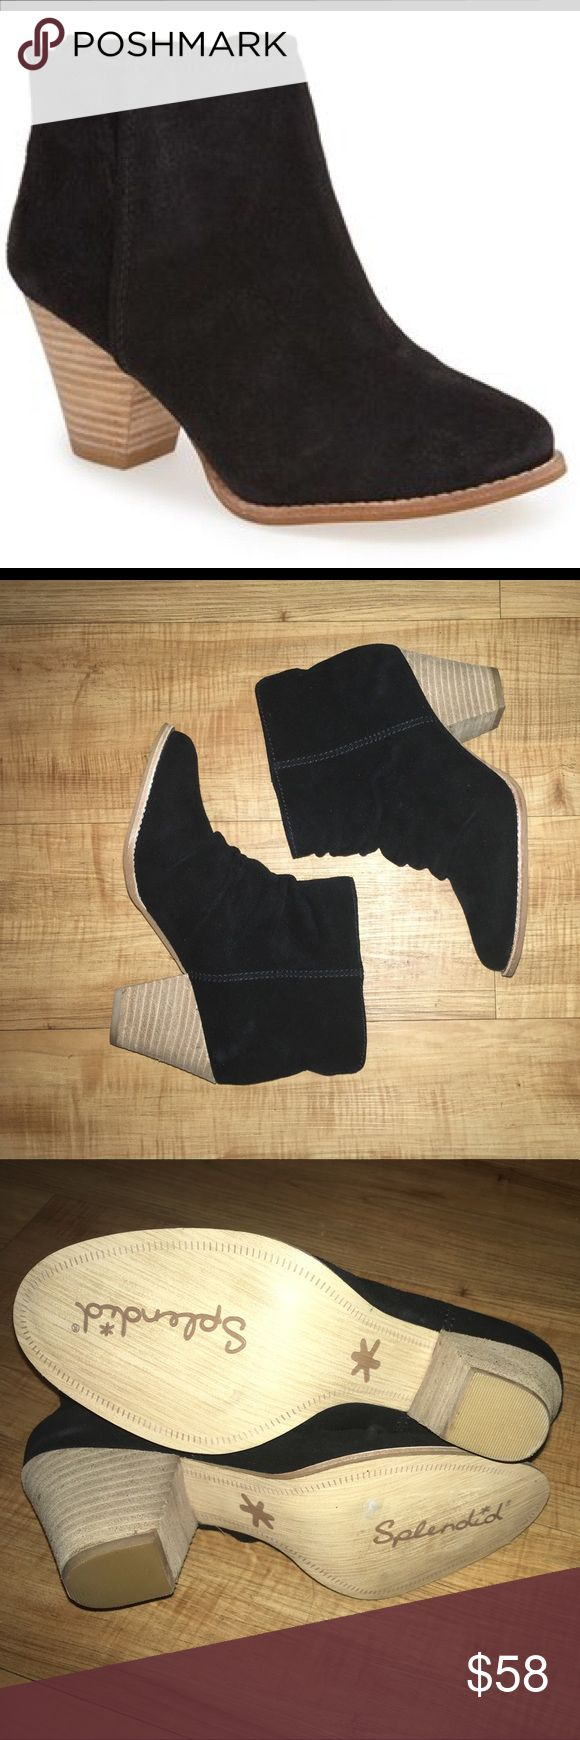 """Splendid suede ankle boots A versatile stacked-heel bootie shaped from smooth suede features a subtly distressed finish for a dash of authentic appeal. 2 1/4"""" heel. 6"""" boot shaft. Back zip closure. Suede or leather upper/synthetic lining and sole. By Splendid; imported. Splendid Shoes Ankle Boots & Booties"""